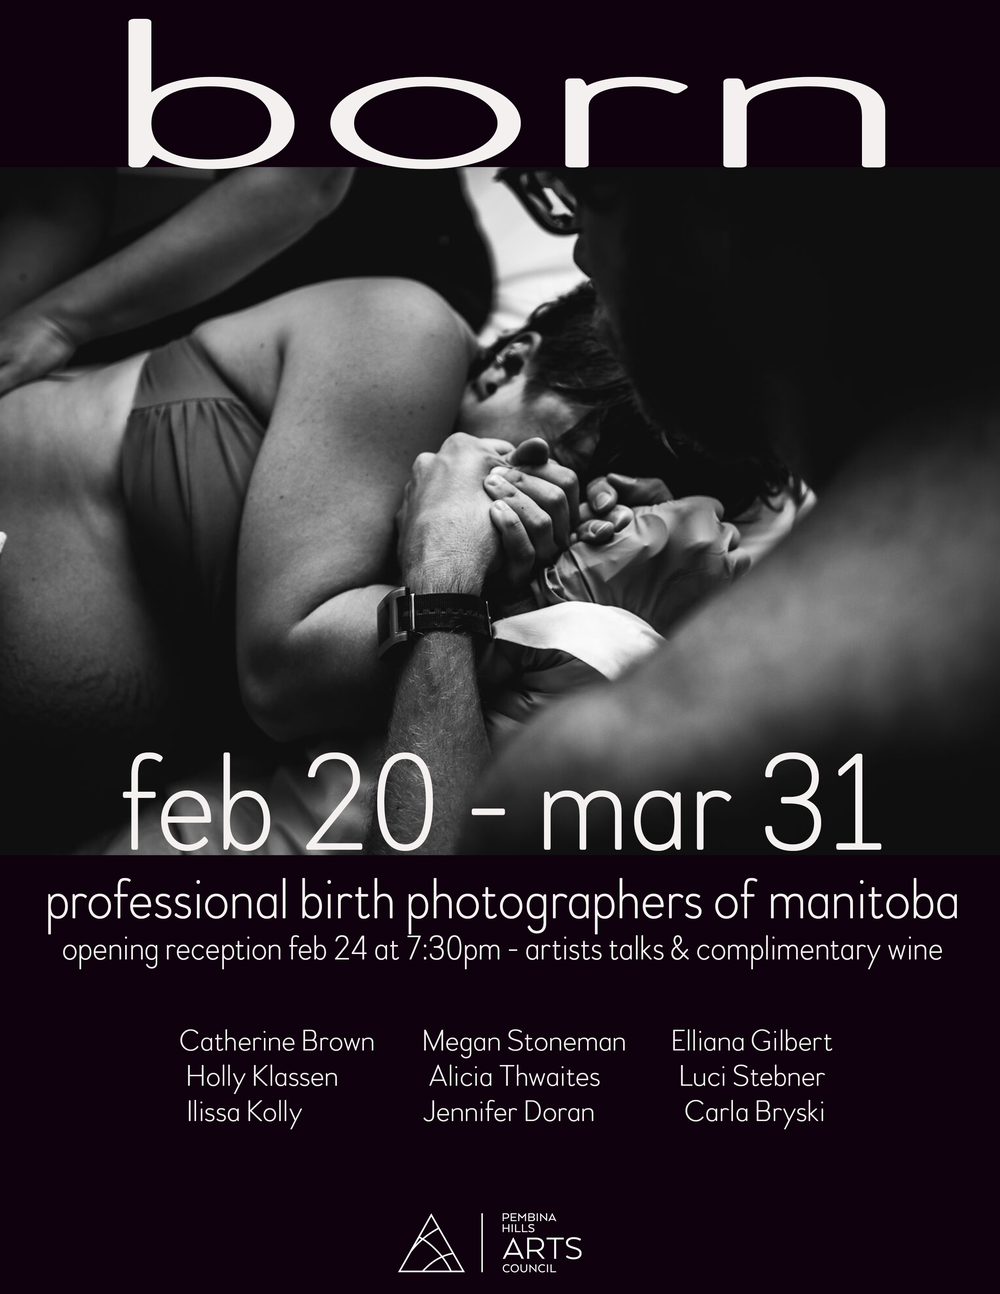 │ BORN │ - A Photographic Celebration of Birth in Manitoba  - Manitoba photographers come together to showcase the beauty of birth in our province Being born is one thing that every human on our planet has in common. As both mothers ourselves, as well as professional photographers, we have joined forces to celebrate the beauty and strength that is the welcoming of new life. We are fueled by our desire to normalize birth in a society that tends to hush open discussions surrounding it. With our art and imagery we hope to showcase the indescribable beauty that occurs where all of our journeys begin; birth. Being held at the Pembina Hills Art Council located at 352 Stephen Street in Morden MB, │BORN│ will run from February 20th through March 30th 2018. The opening reception will take place on Saturday February 24th at 7:30pm, with an artist talk at approx. 8:00pm.  We are honoured to invite you to join us in celebrating this unique and powerful exhibit. It is an honour and a privilege every time we are trusted to enter into a family's birth space to document their transition into parenthood (or parenthood again). We are now humbled to be able to share some of these incredible moments with all of you.